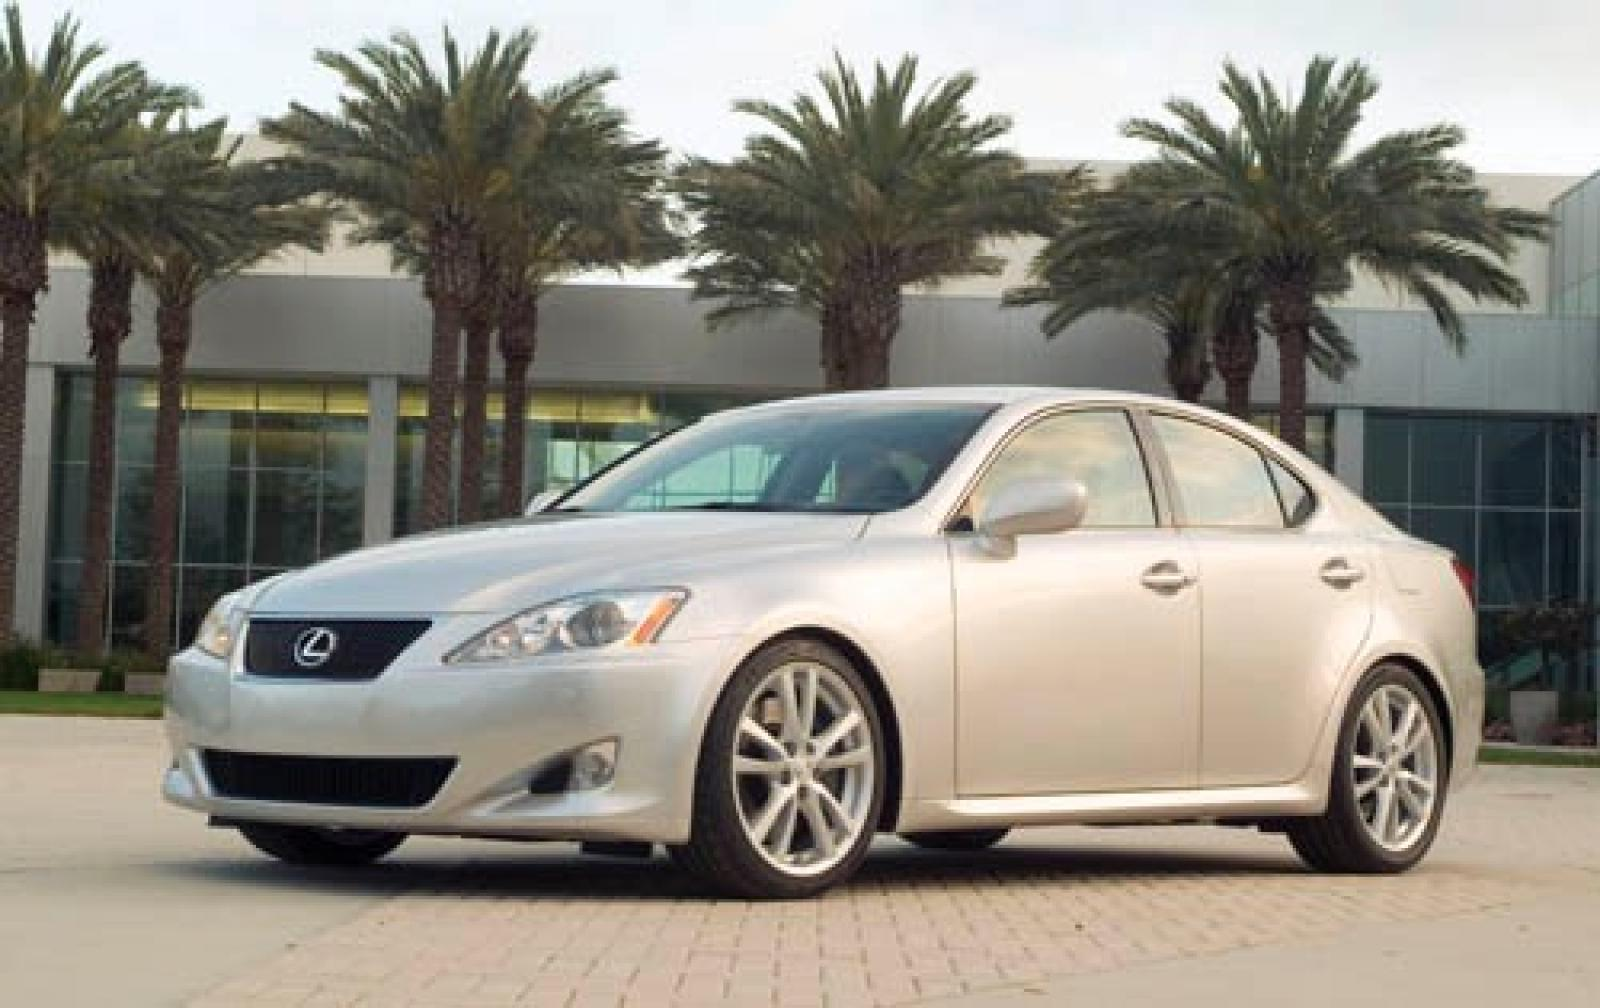 2006 lexus is 350 information and photos zombiedrive. Black Bedroom Furniture Sets. Home Design Ideas